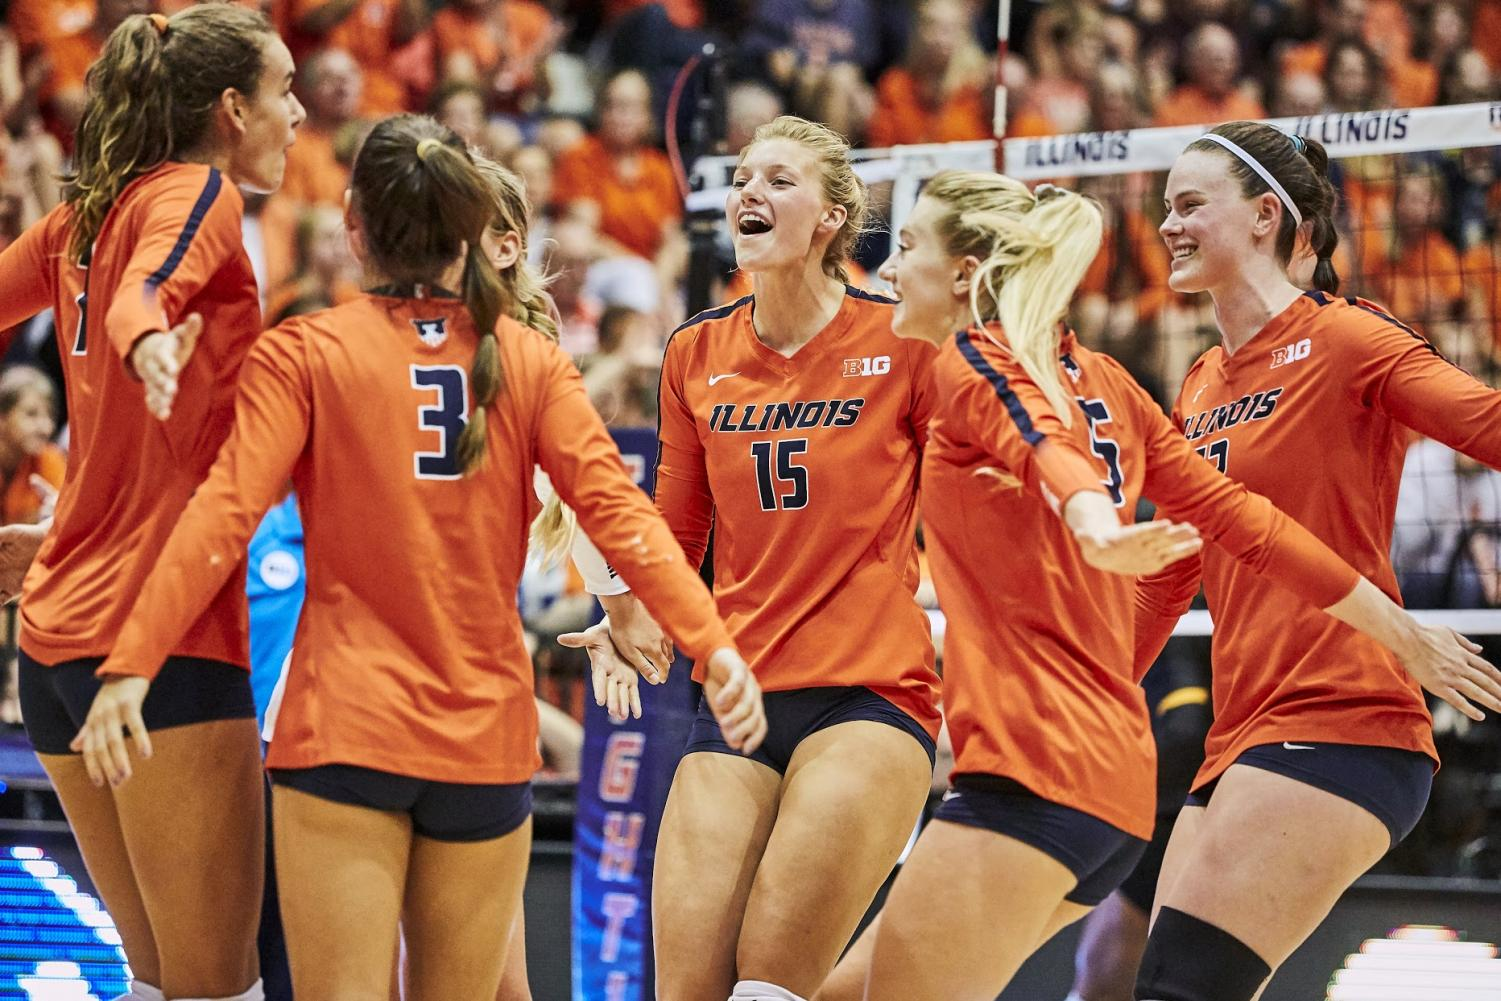 Megan Cooney (15) celebrates with the Illini Volleyball team at Huff Hall at the Illini's game vs. Iowa on Sep 28. Although her position change has posed challenges, Cooney is using her past experiences and team practices to improve.